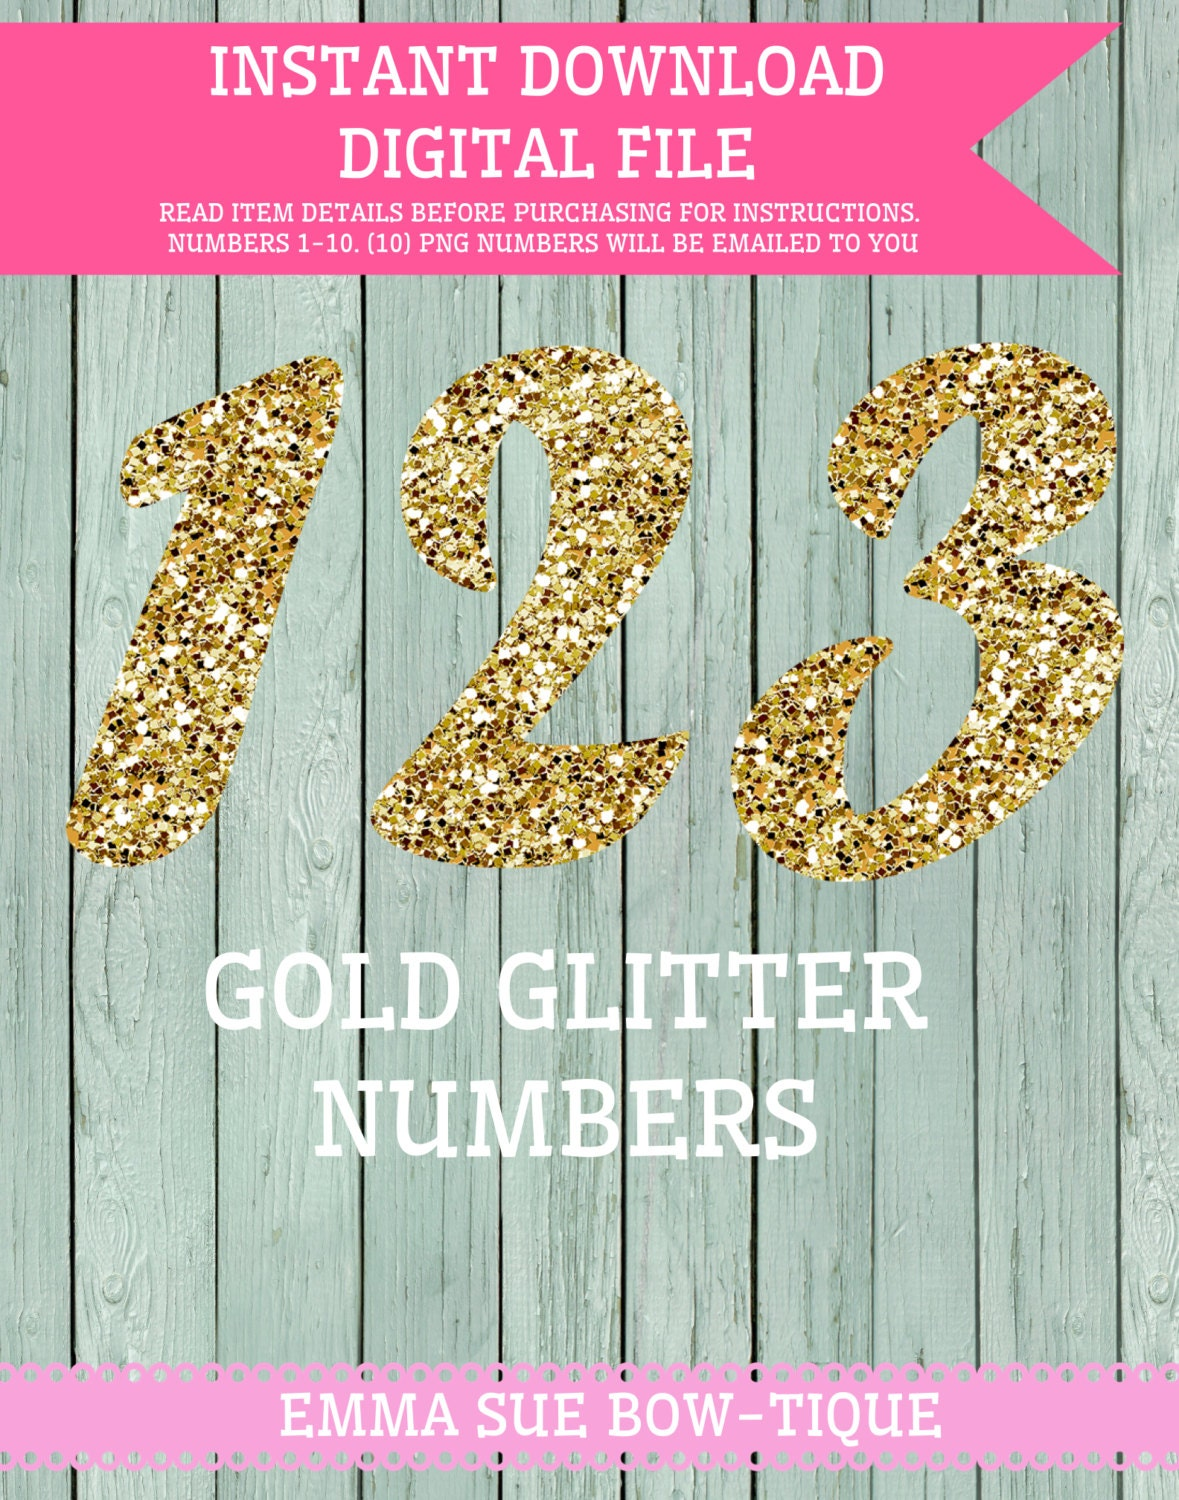 Gold Glitter Numbers 0-10 Clipart Transparent background | Etsy